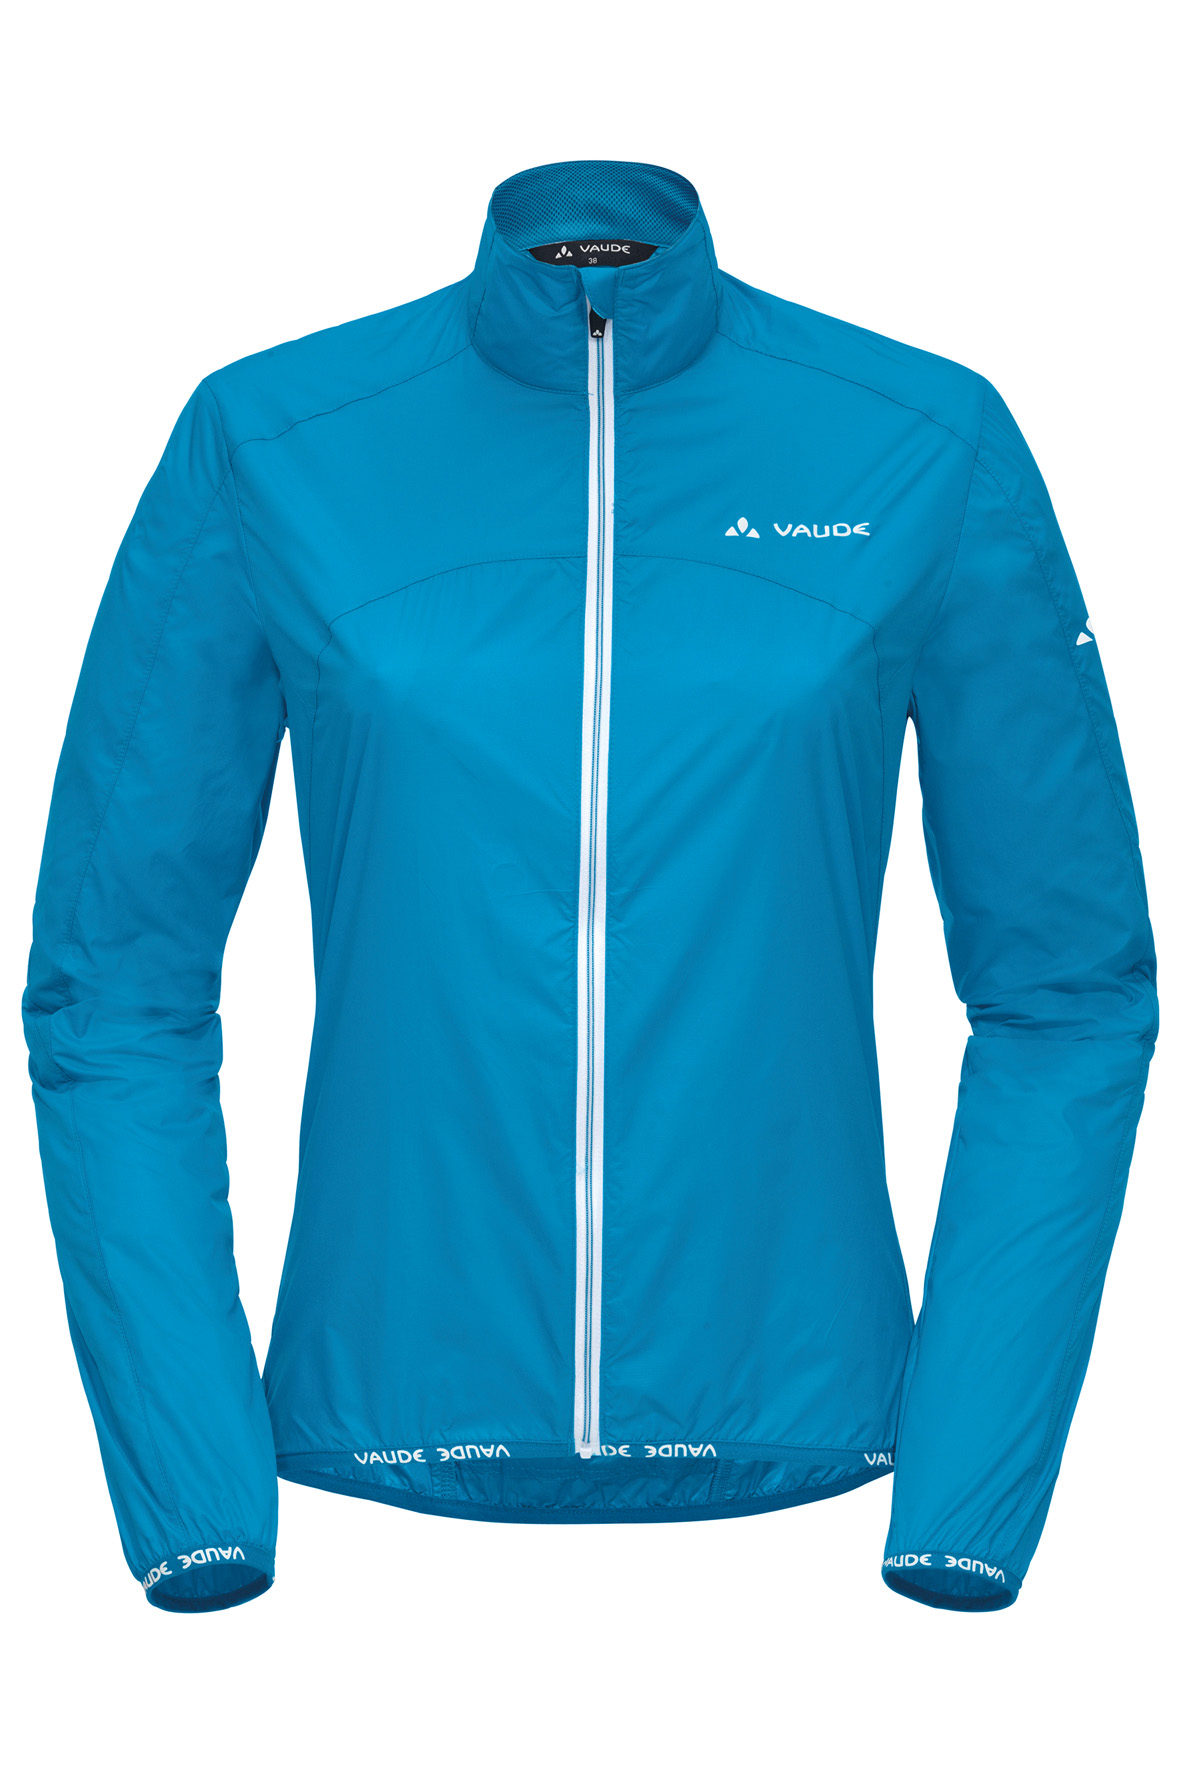 VAUDE Women´s Air Jacket II teal blue Größe 38 - schneider-sports